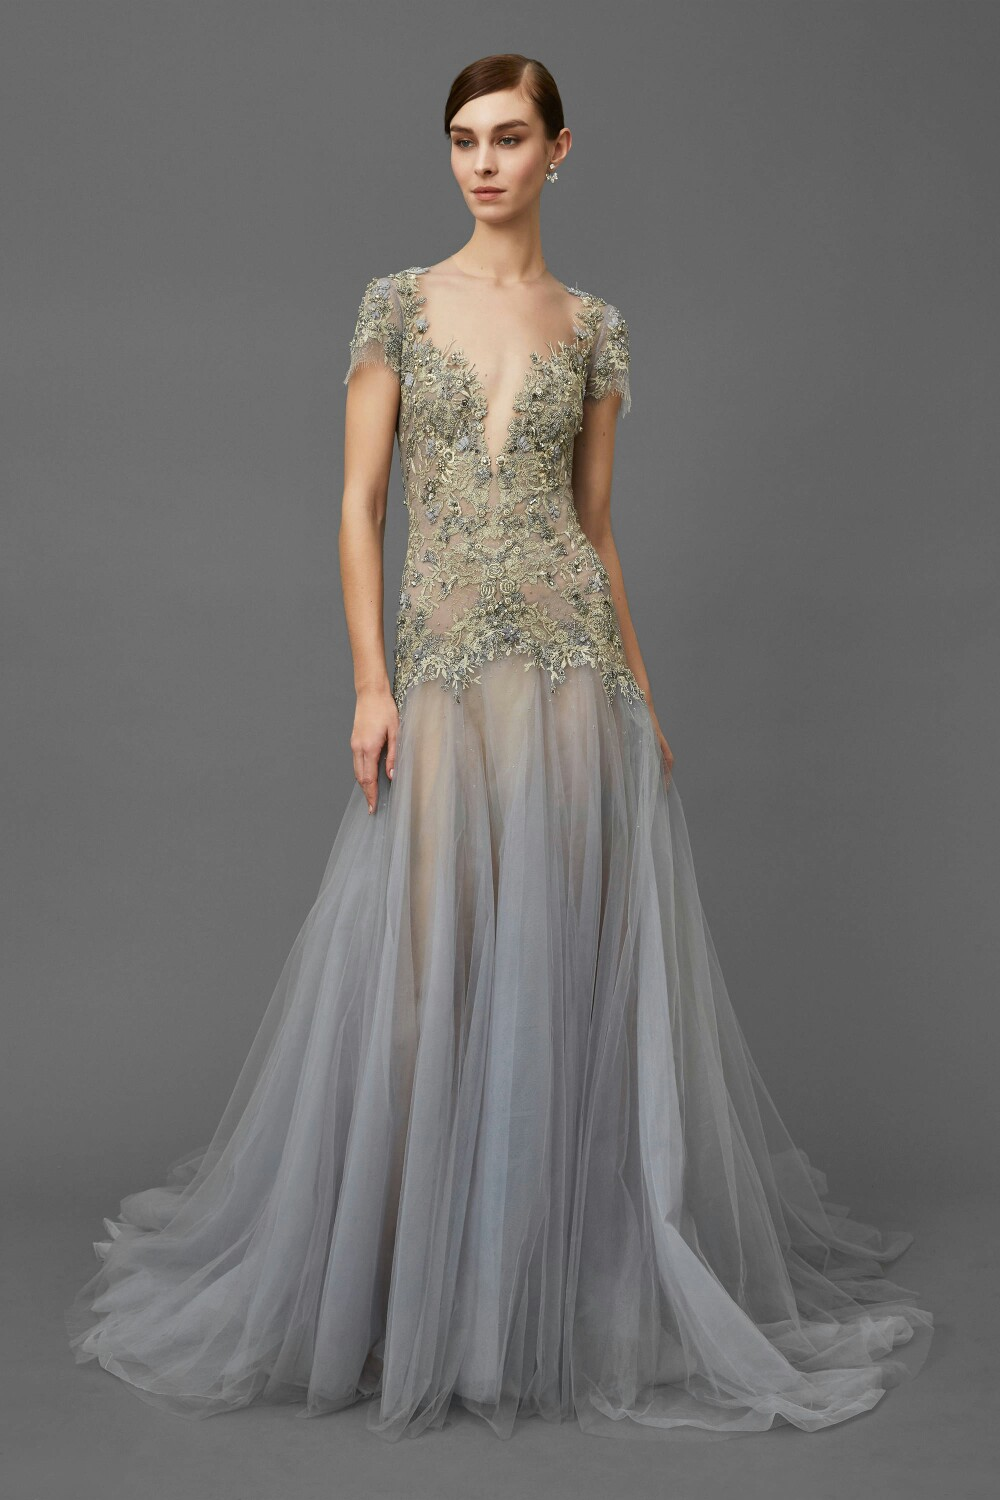 e2c49b7c21 Elie_Saab Champagne and Gray Tulle Evening Dresses O- Neck short sleeve  Floor length Court train